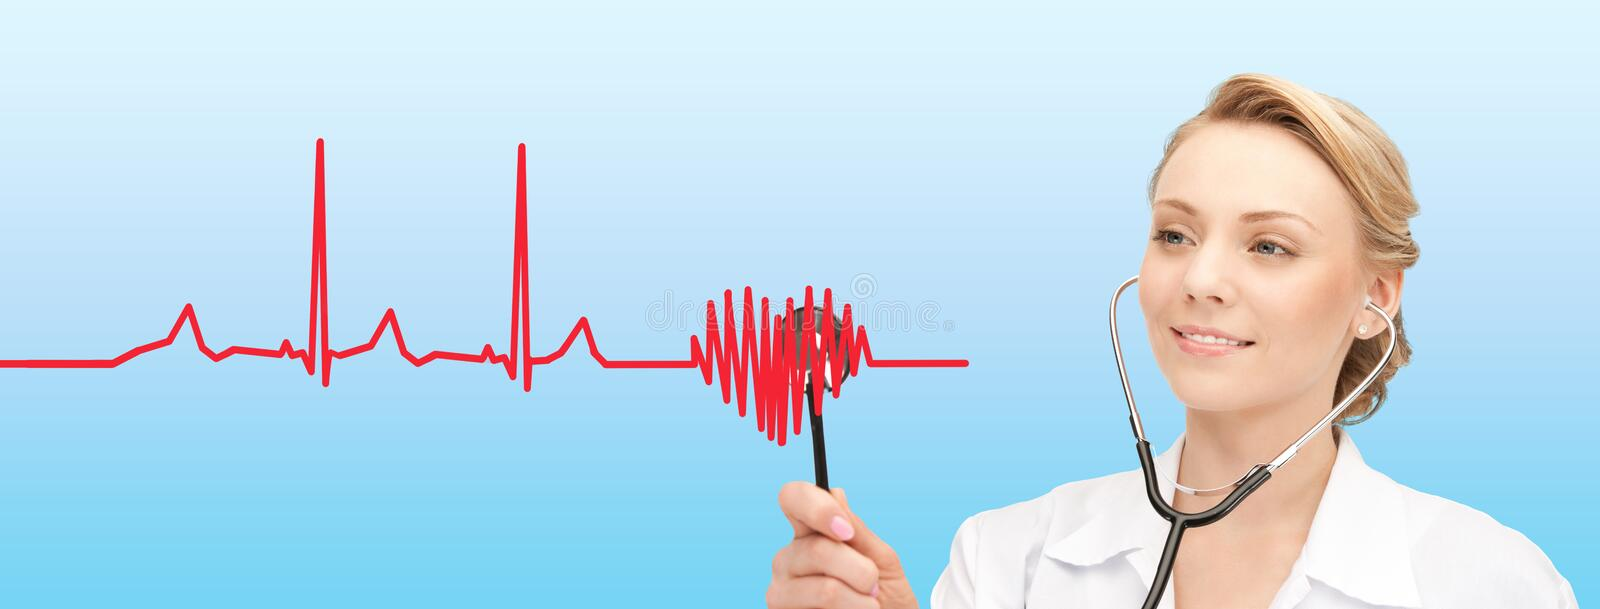 Smiling female doctor listening to heartbeat stock photo